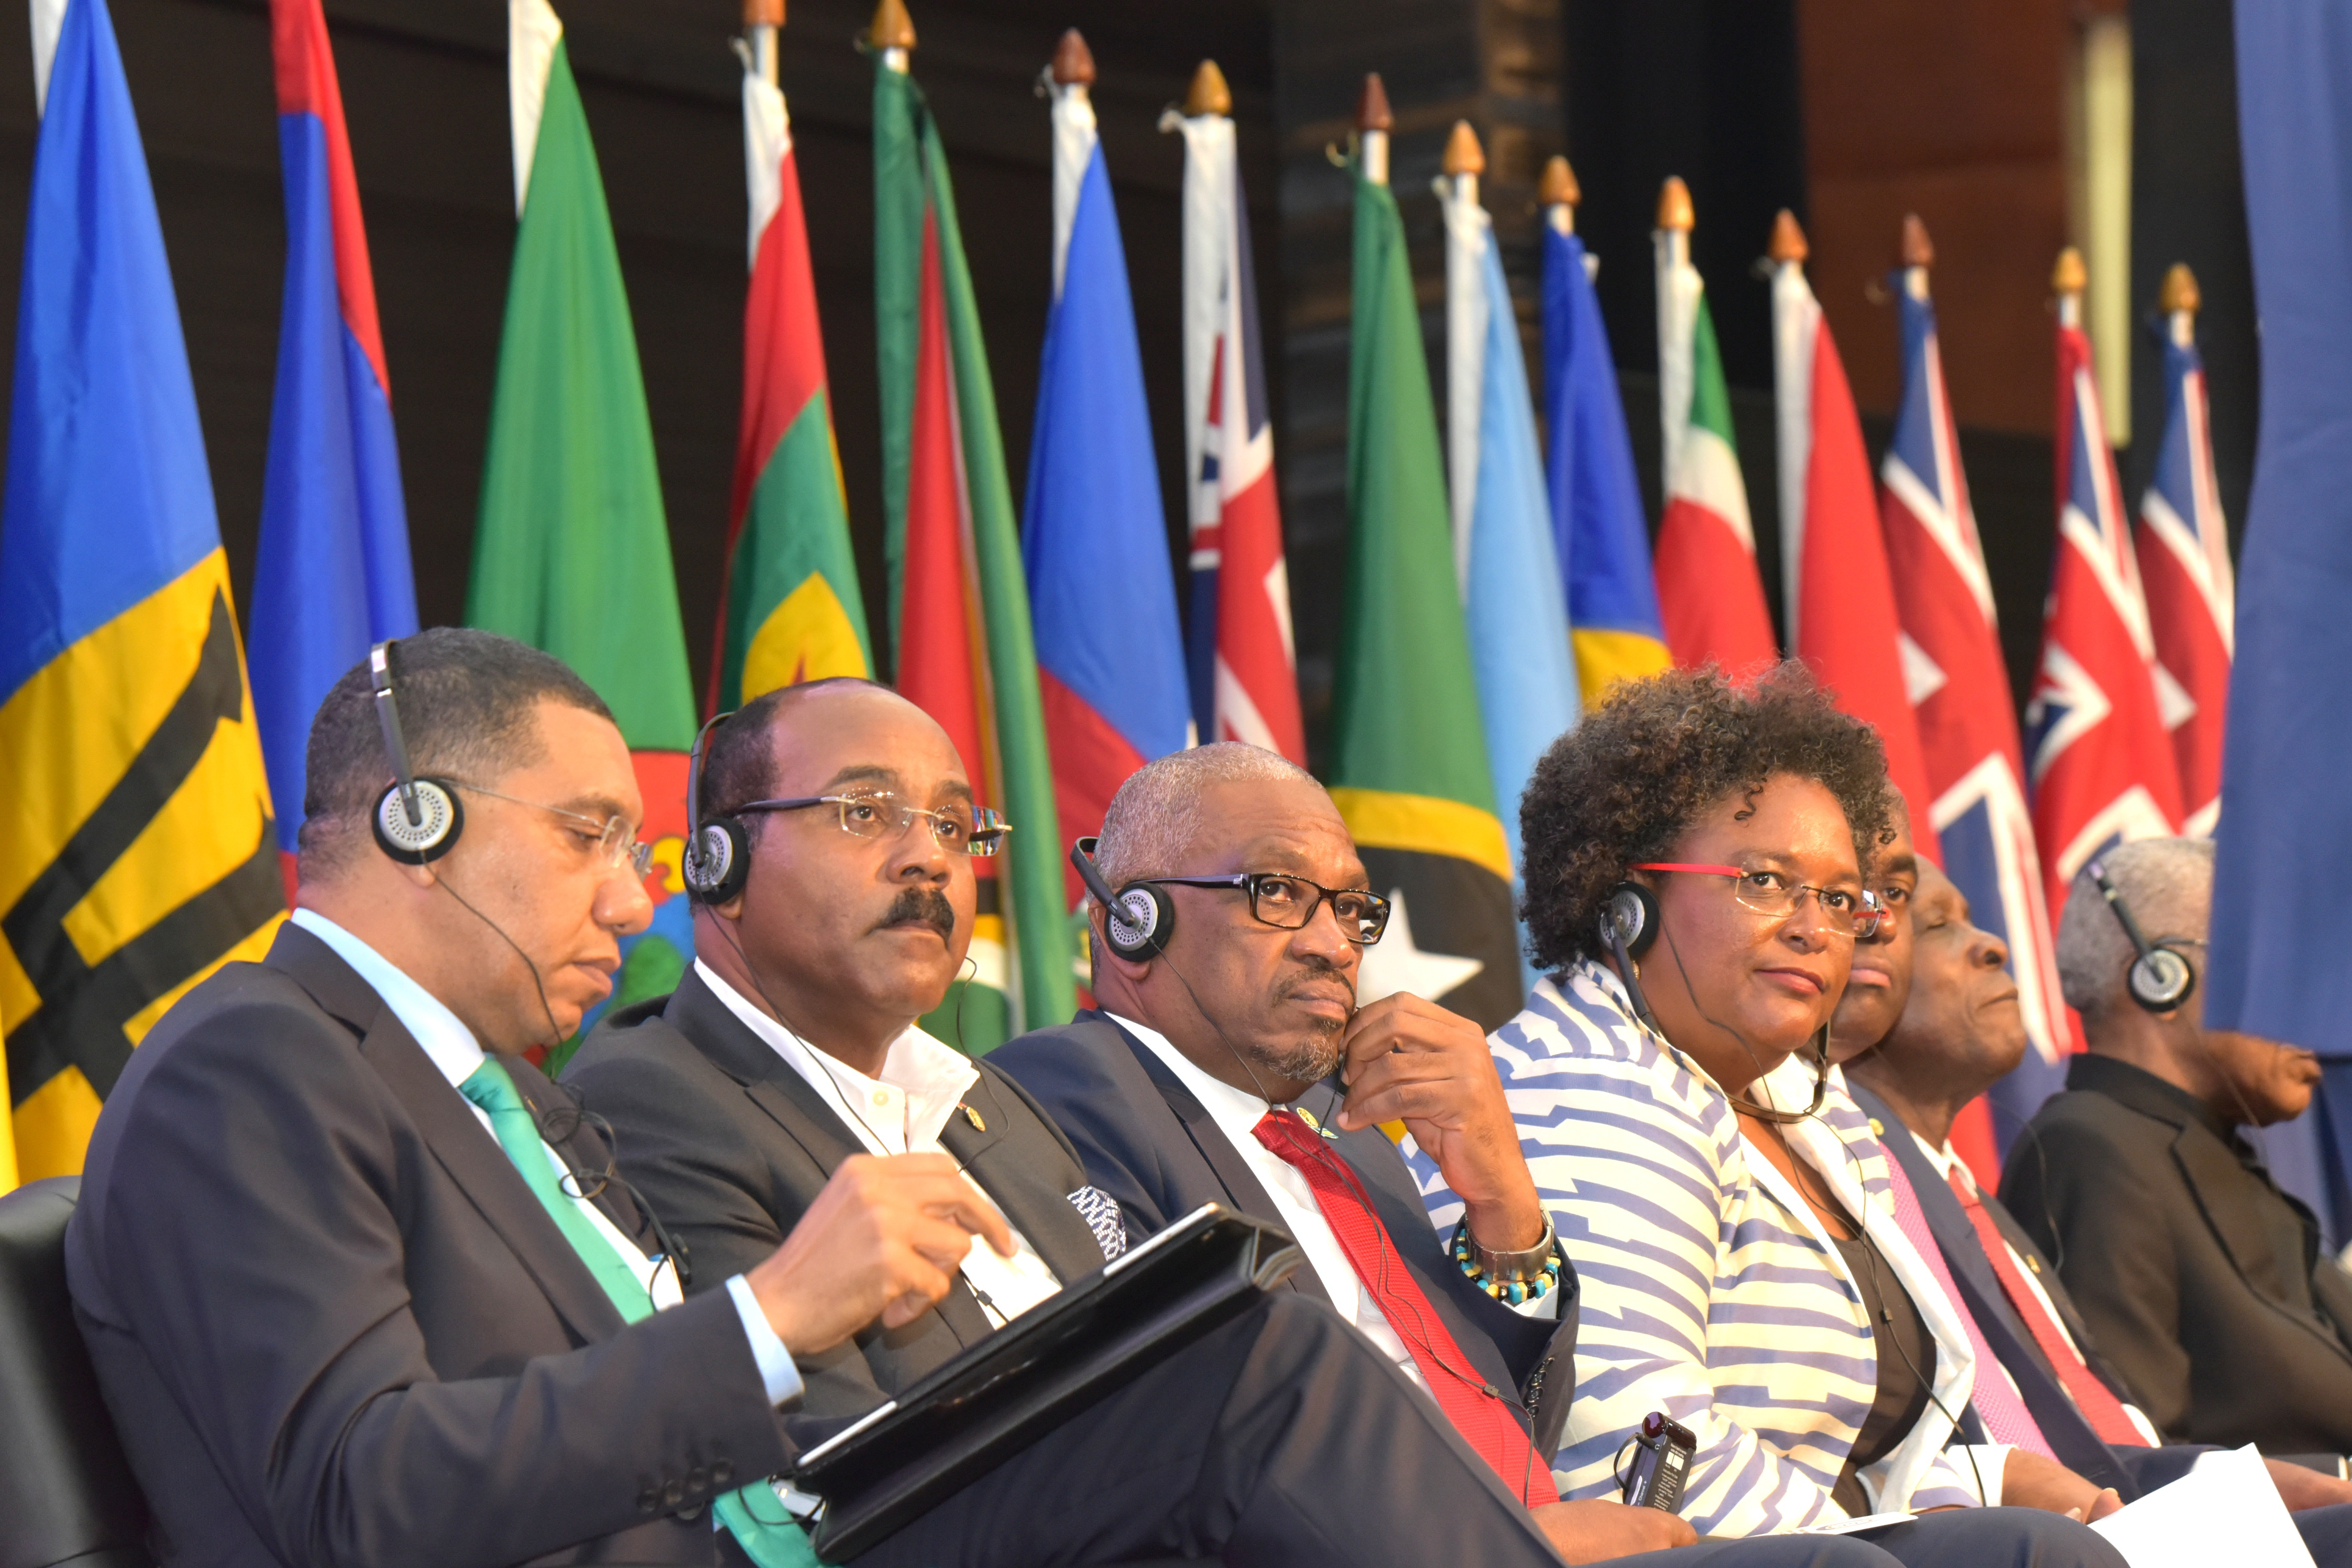 Call for Greater Caribbean Integration at CARICOM Meeting